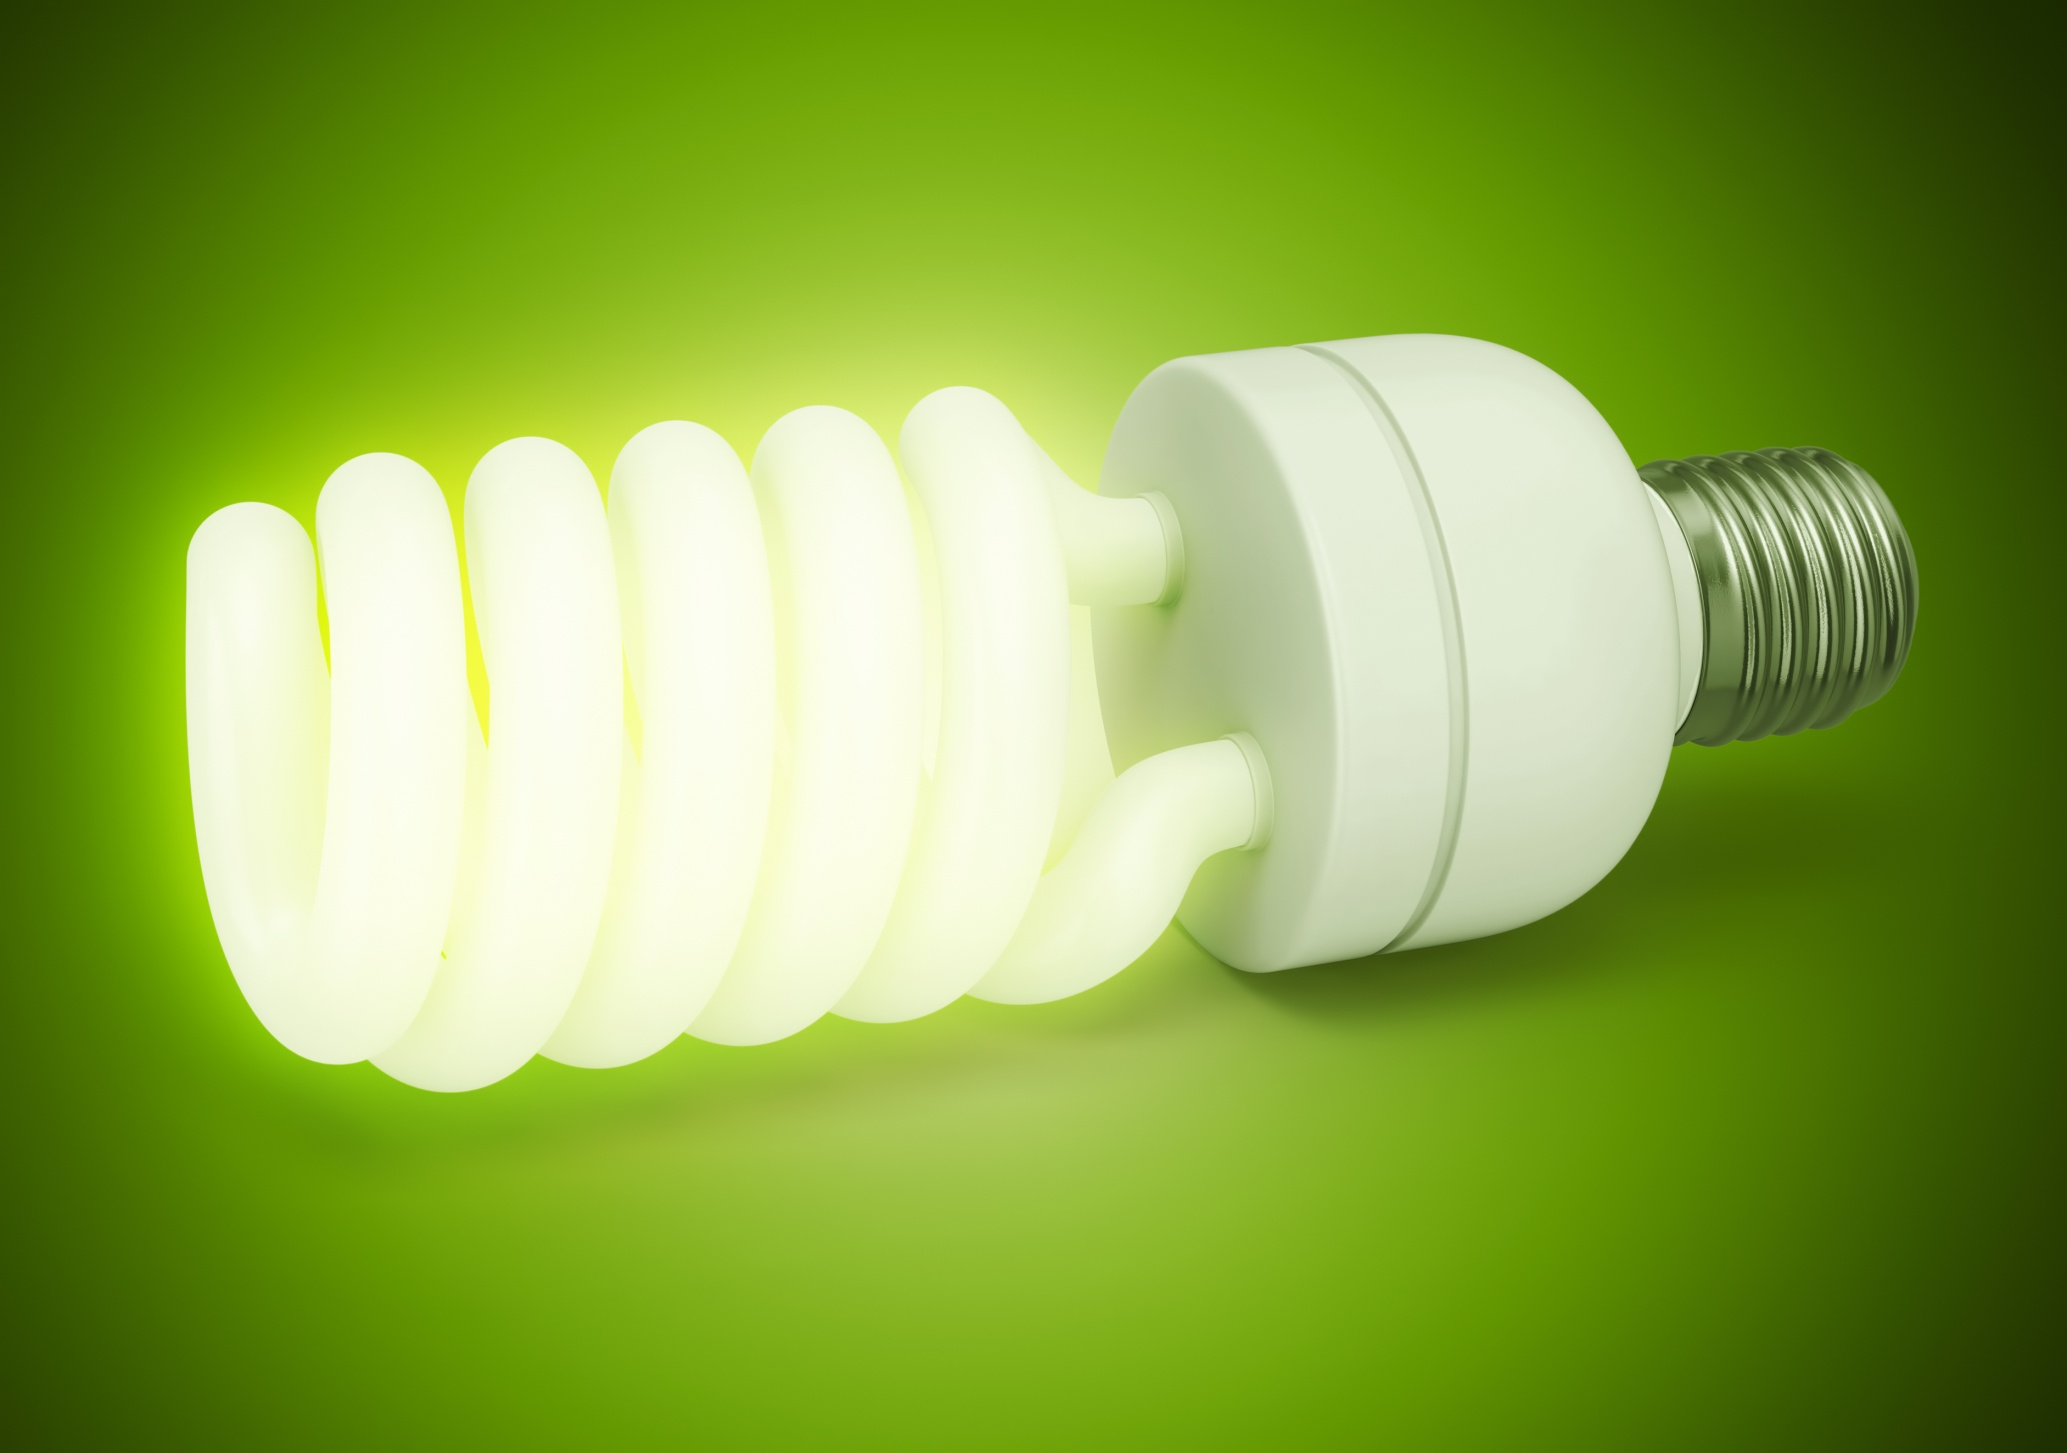 greenlightbulb-ThinkstockPhotos-469361066.jpg